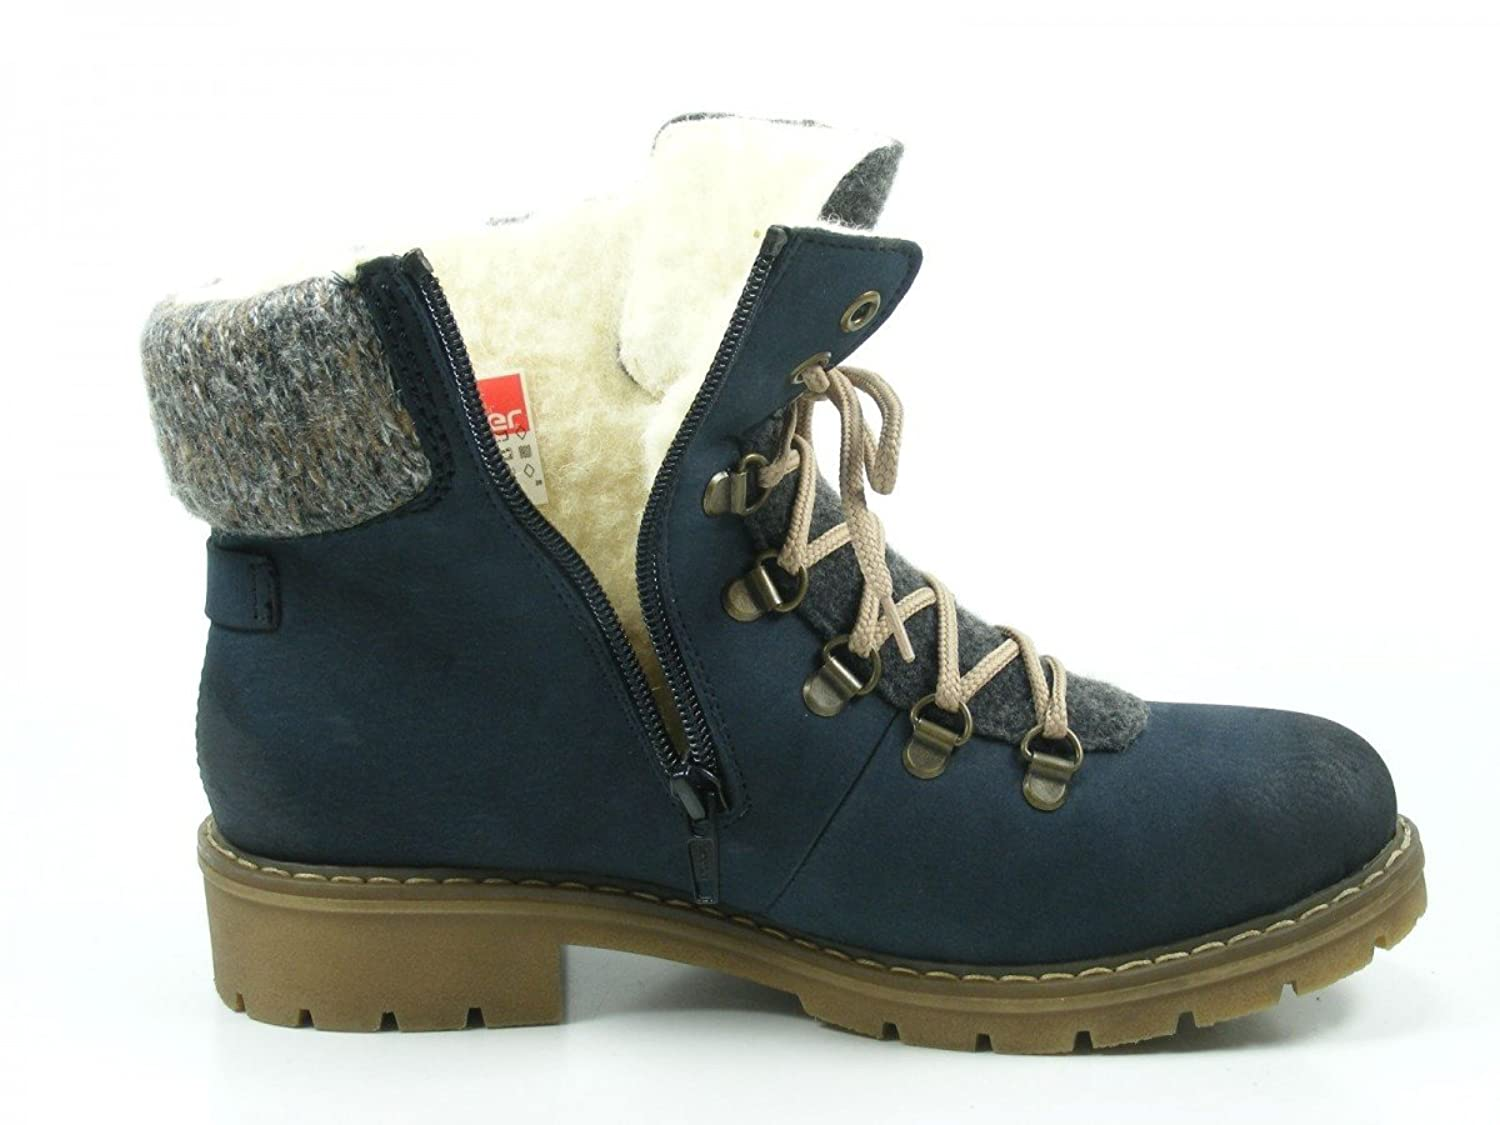 Rieker Y9131 - 14 Pazifik (Navy) Womens Boots: Amazon.co.uk: Shoes & Bags